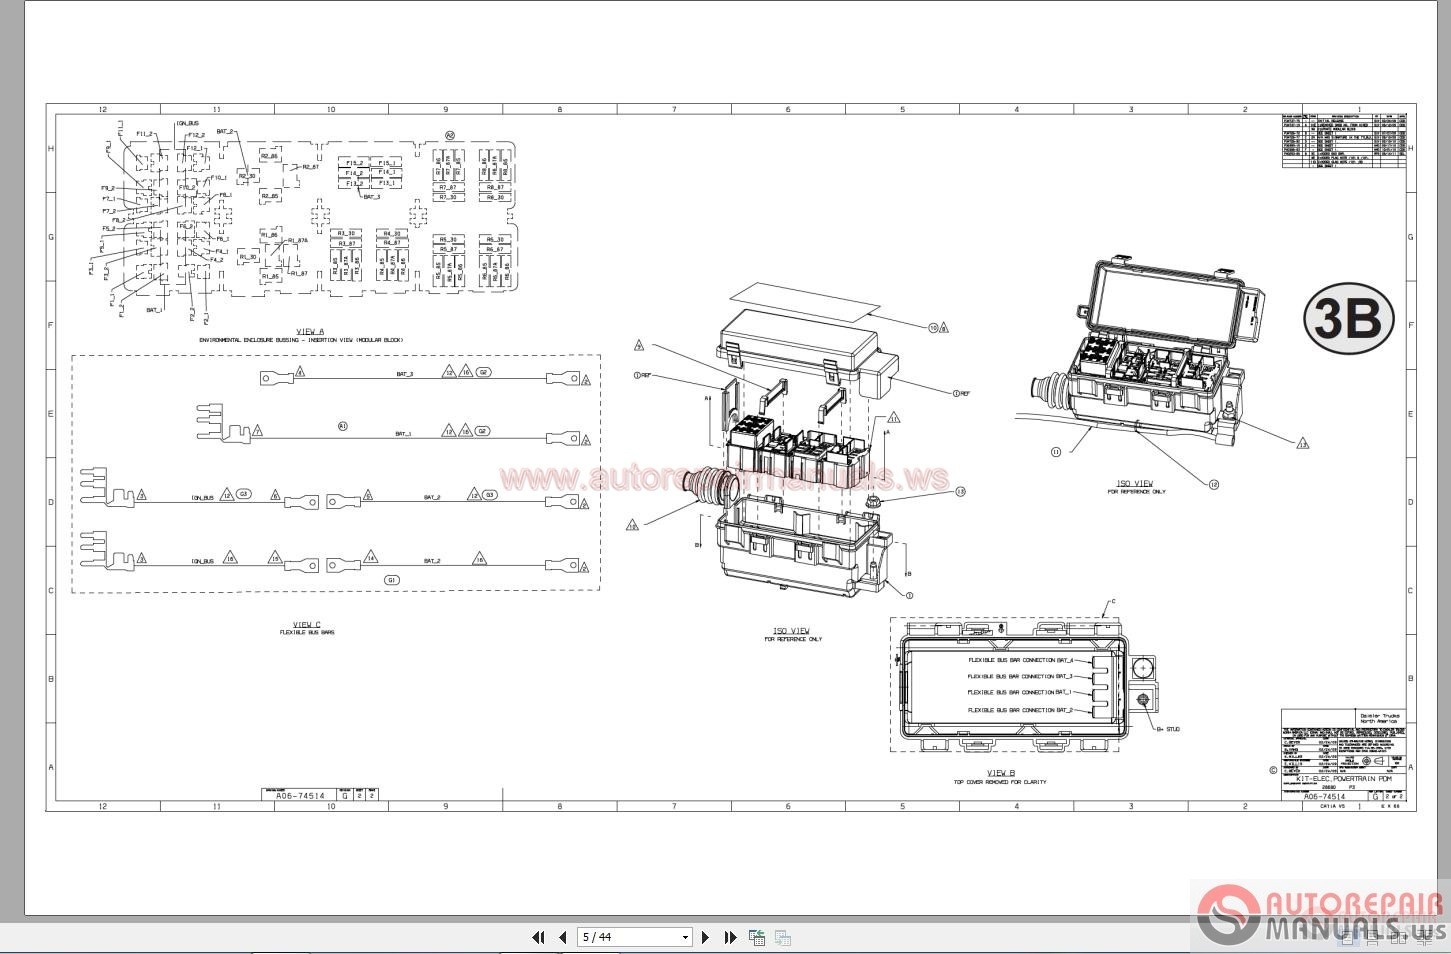 2013 Freightliner Radio Wiring Diagram Will Be A 1999 Fuse Panel 1981 International Truck Box 2007